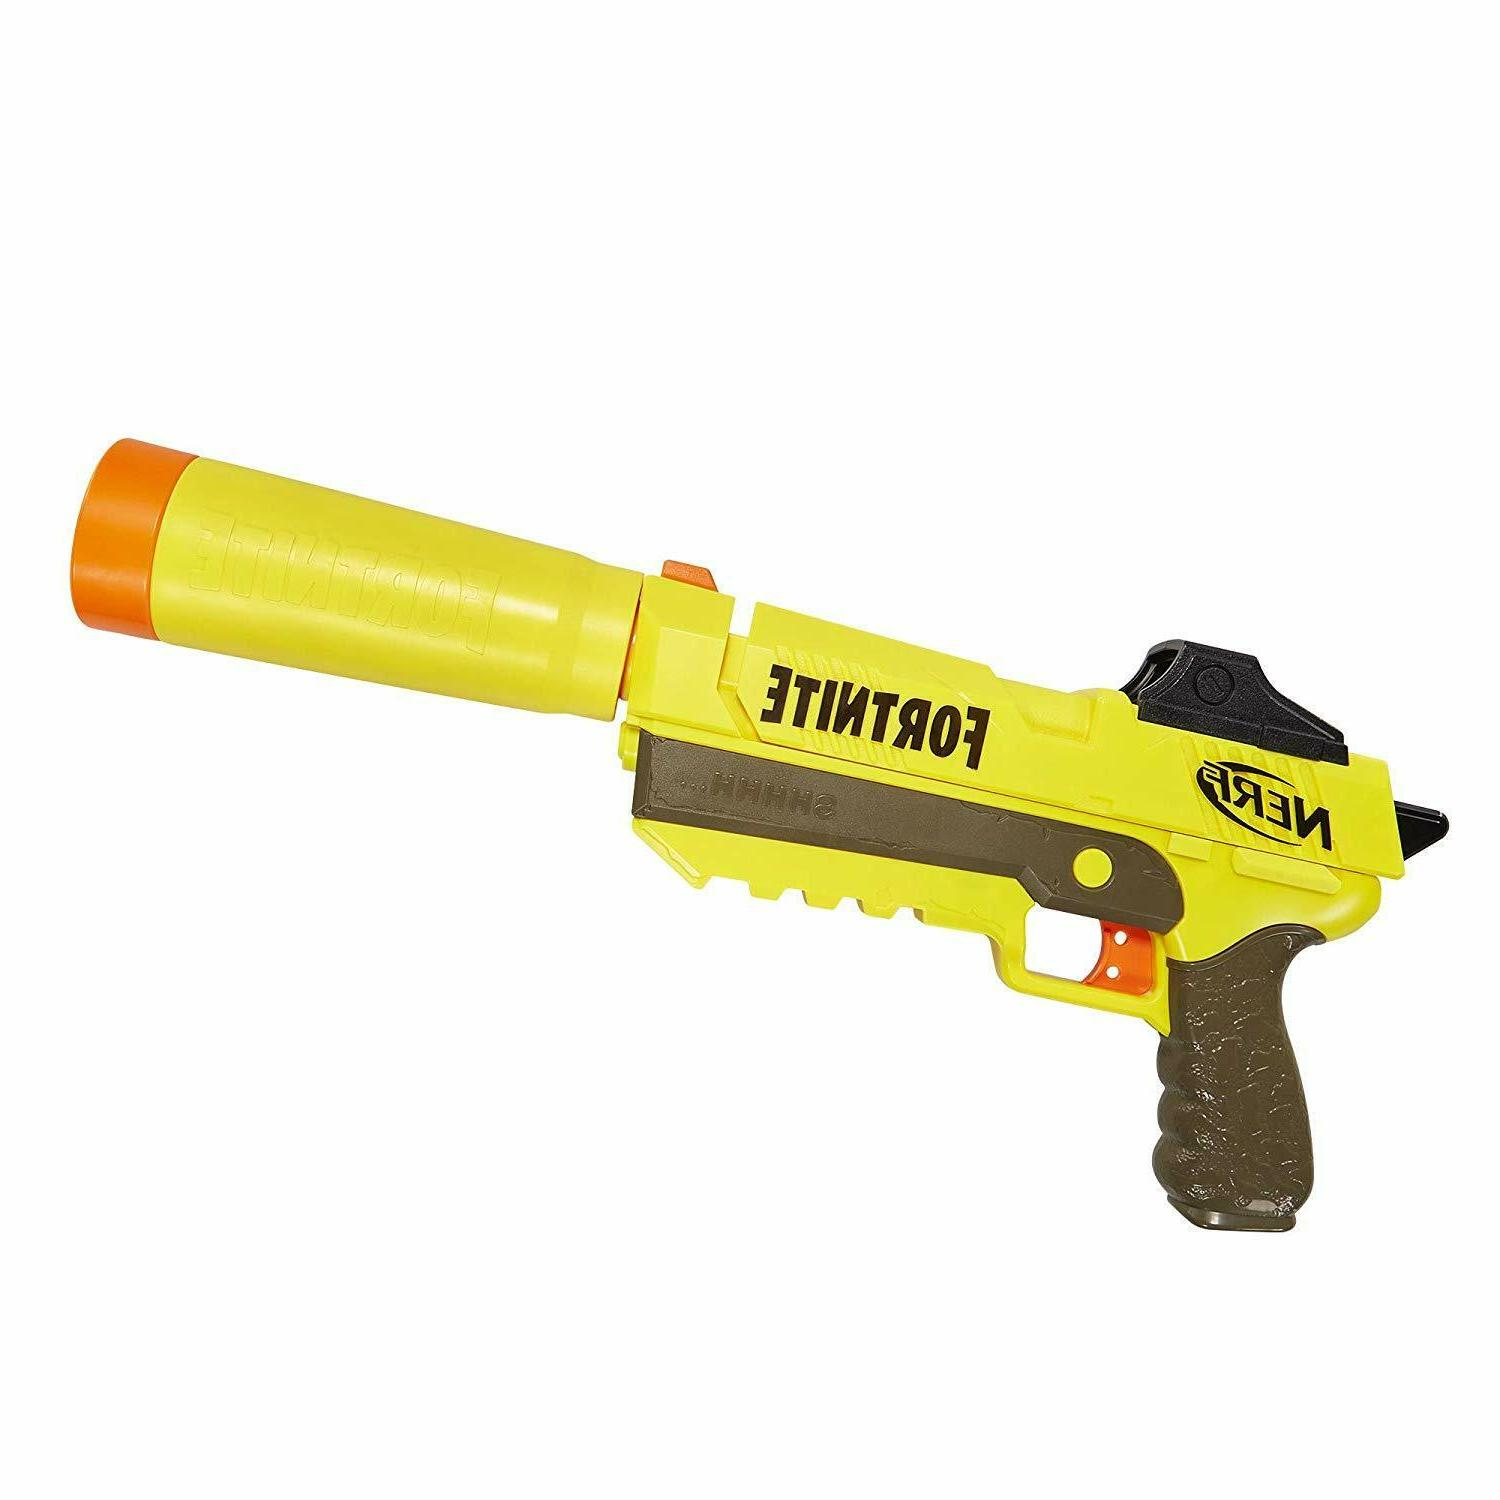 Nerf Fortnite Sp-L Elite Dart Blaster Replica Pistol Gun